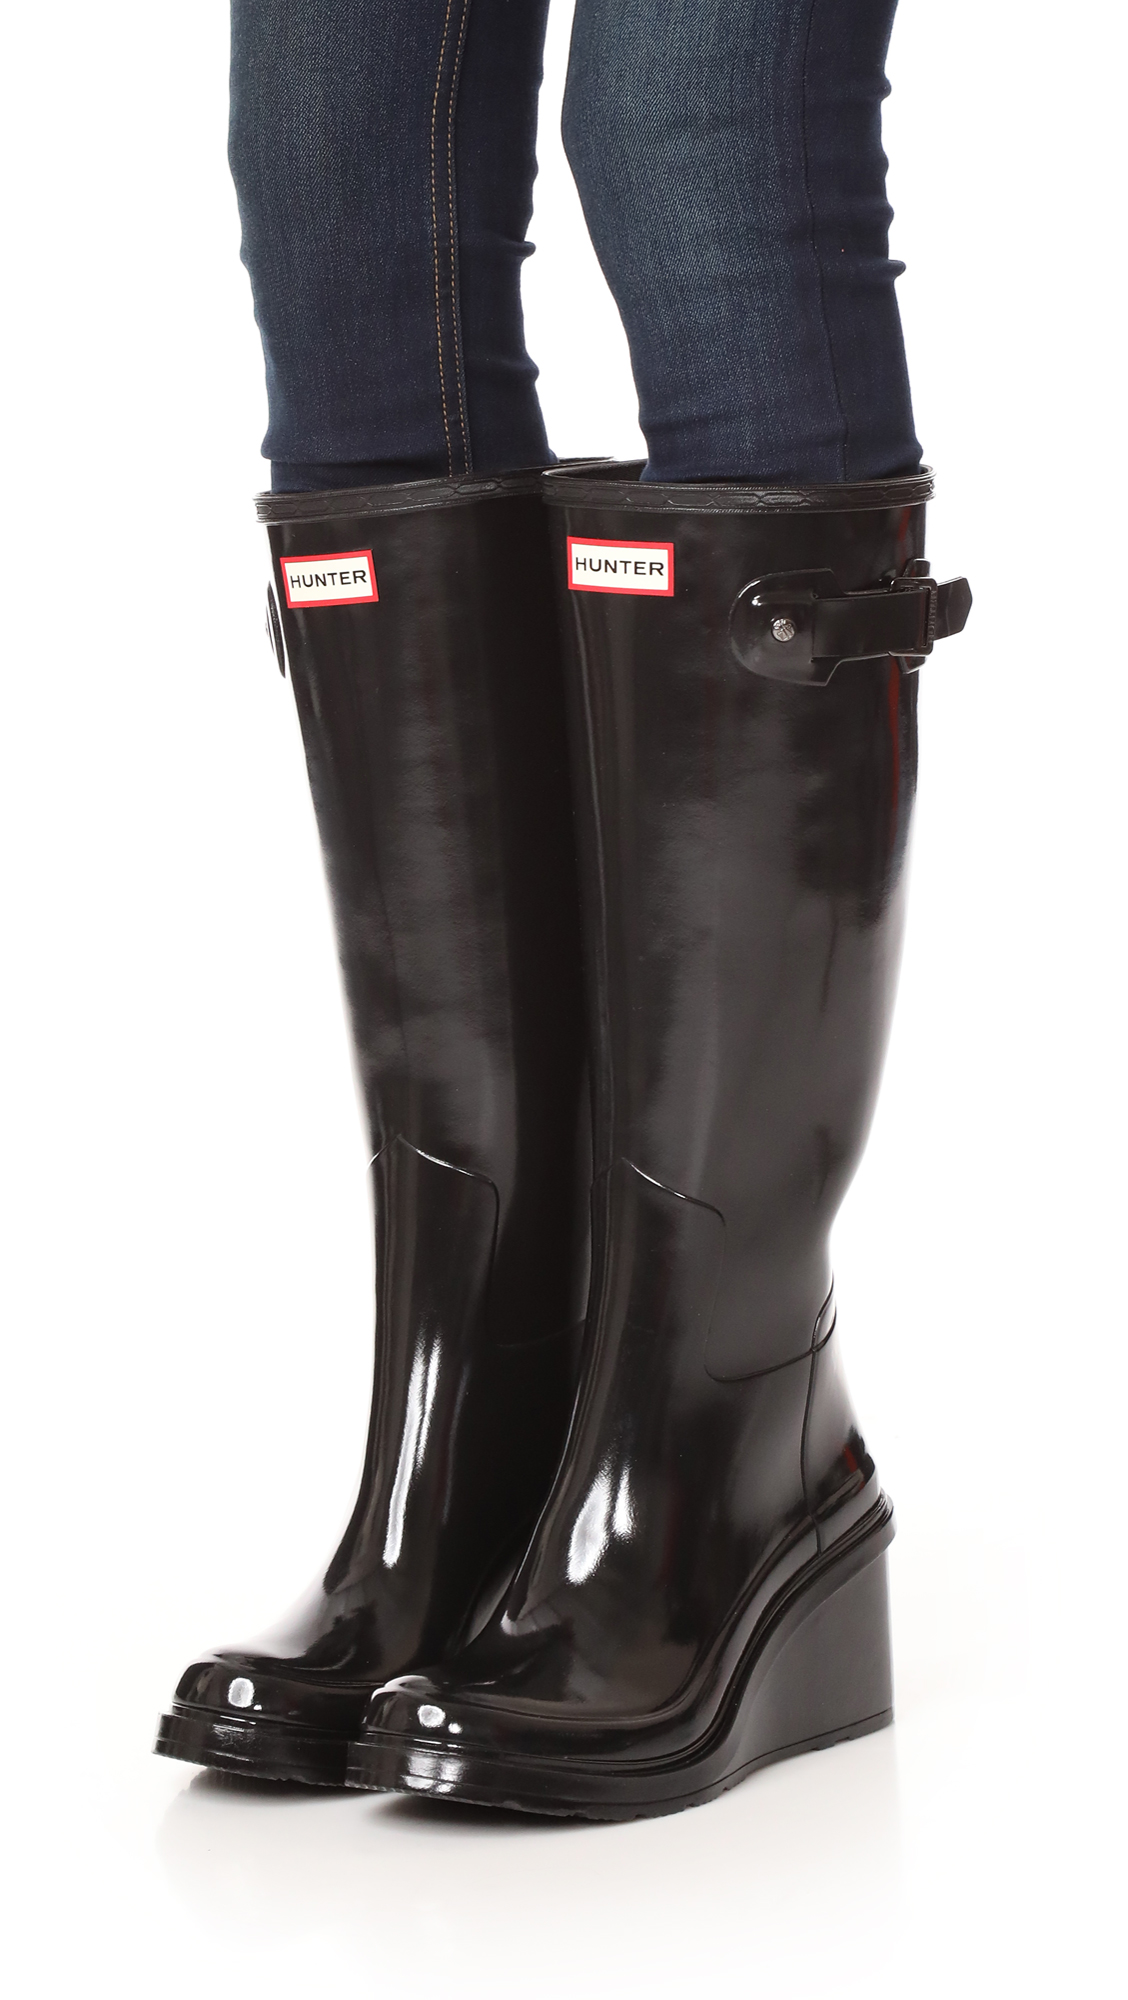 ca64941a90a Hunter Boots Original Refined Mid Wedge Tall Boots